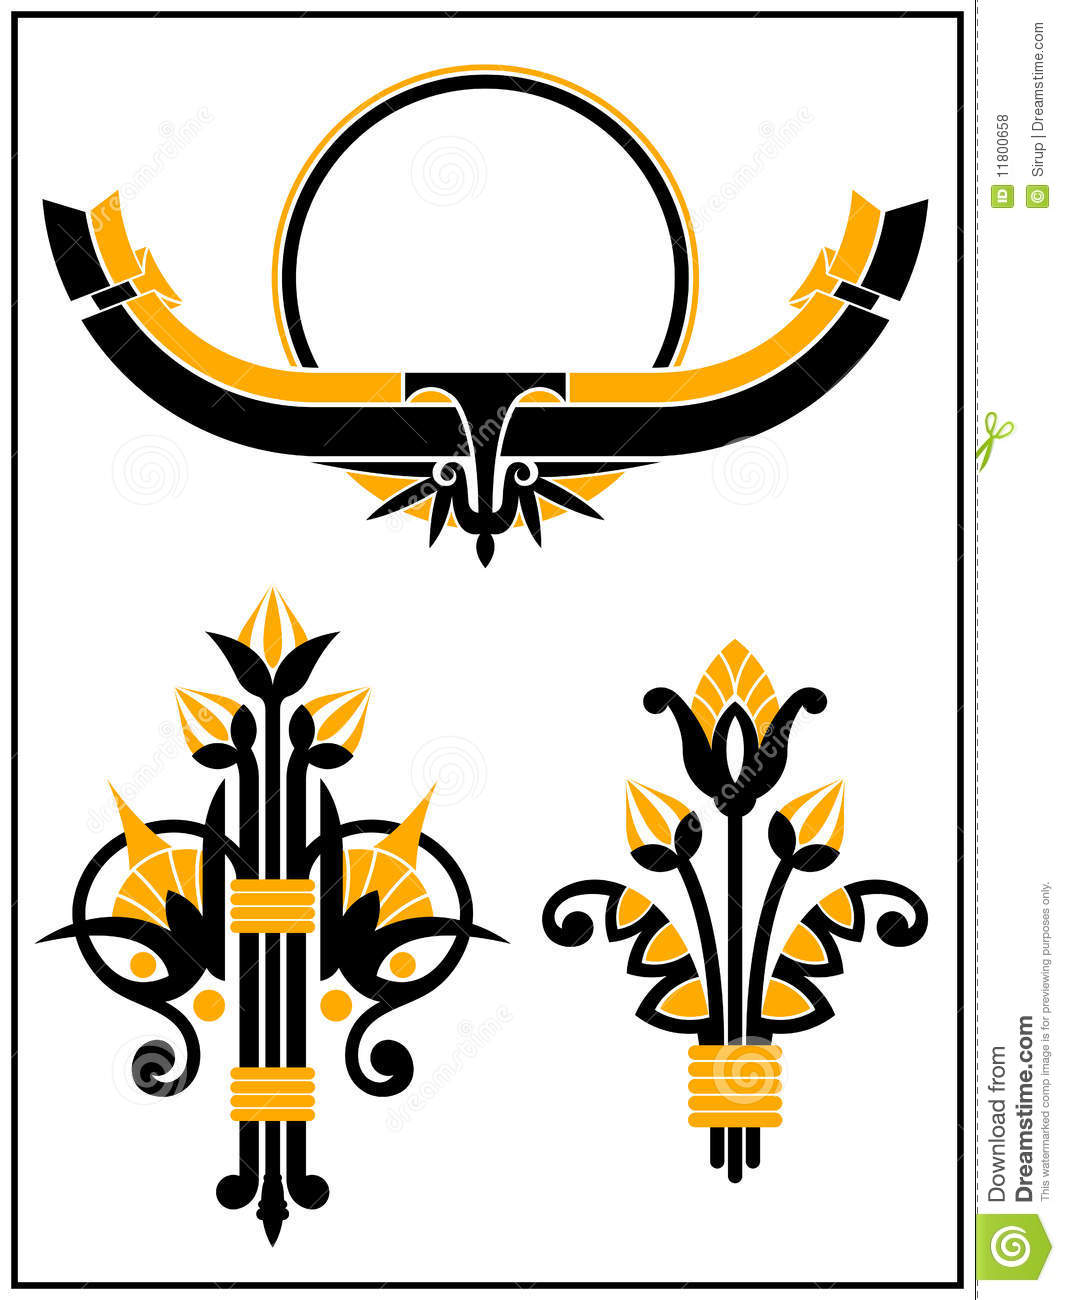 Art deco design elements collection stock vector image for Deco 5 elements